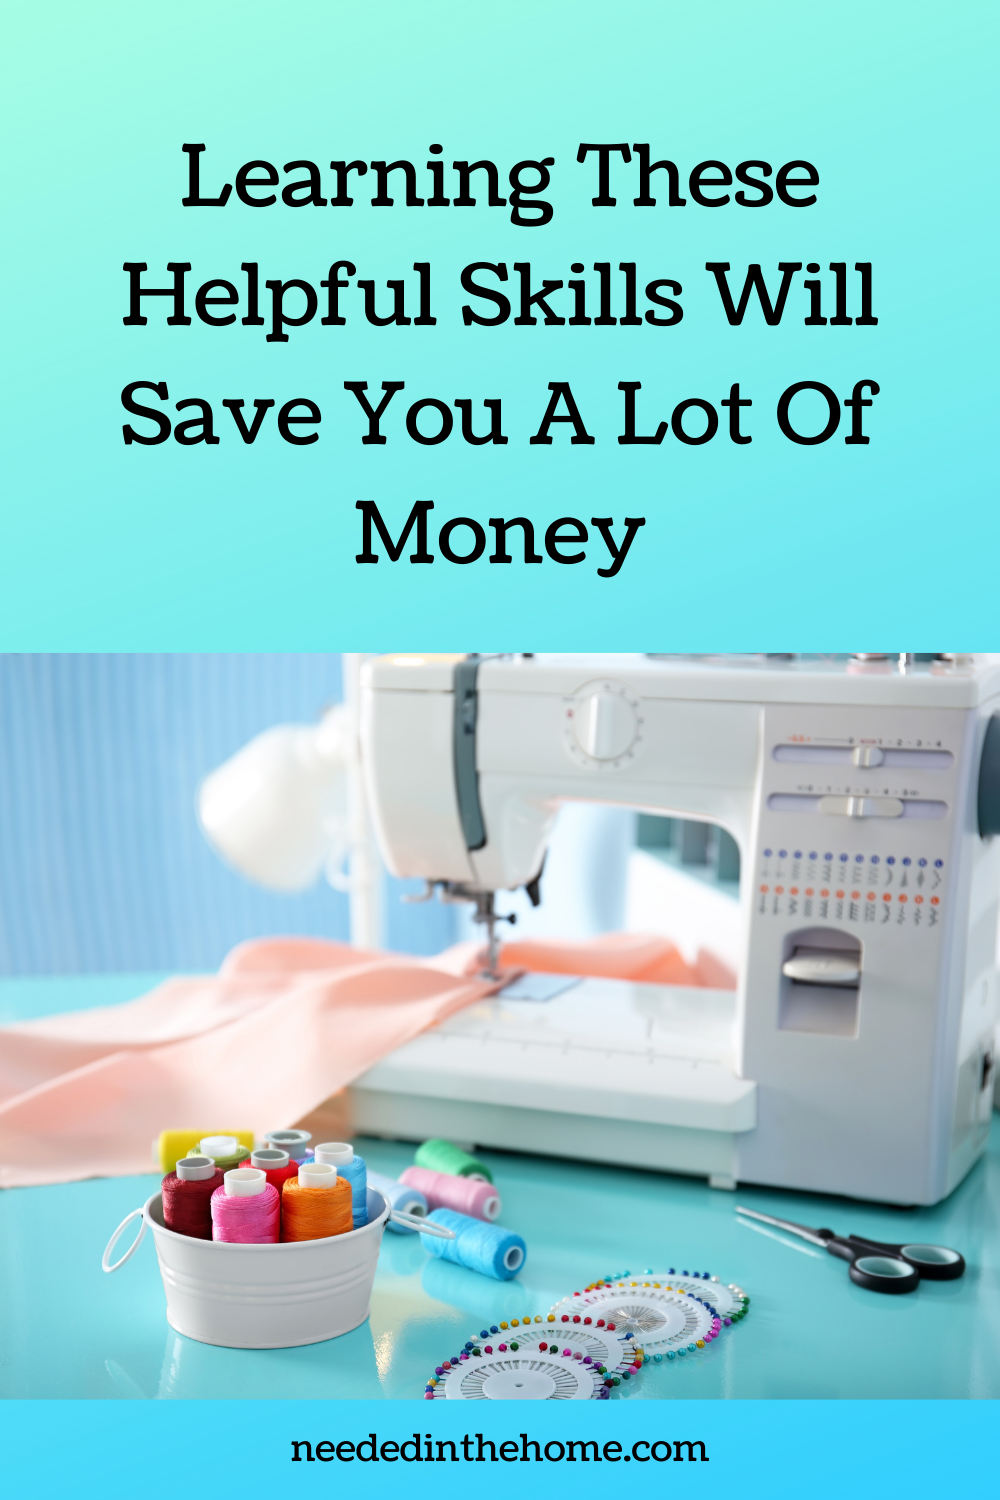 pinterest-pin-description Learning these helpful skills will save you a lot of money layout of sewing machine and accessories thread scissors neededinthehome